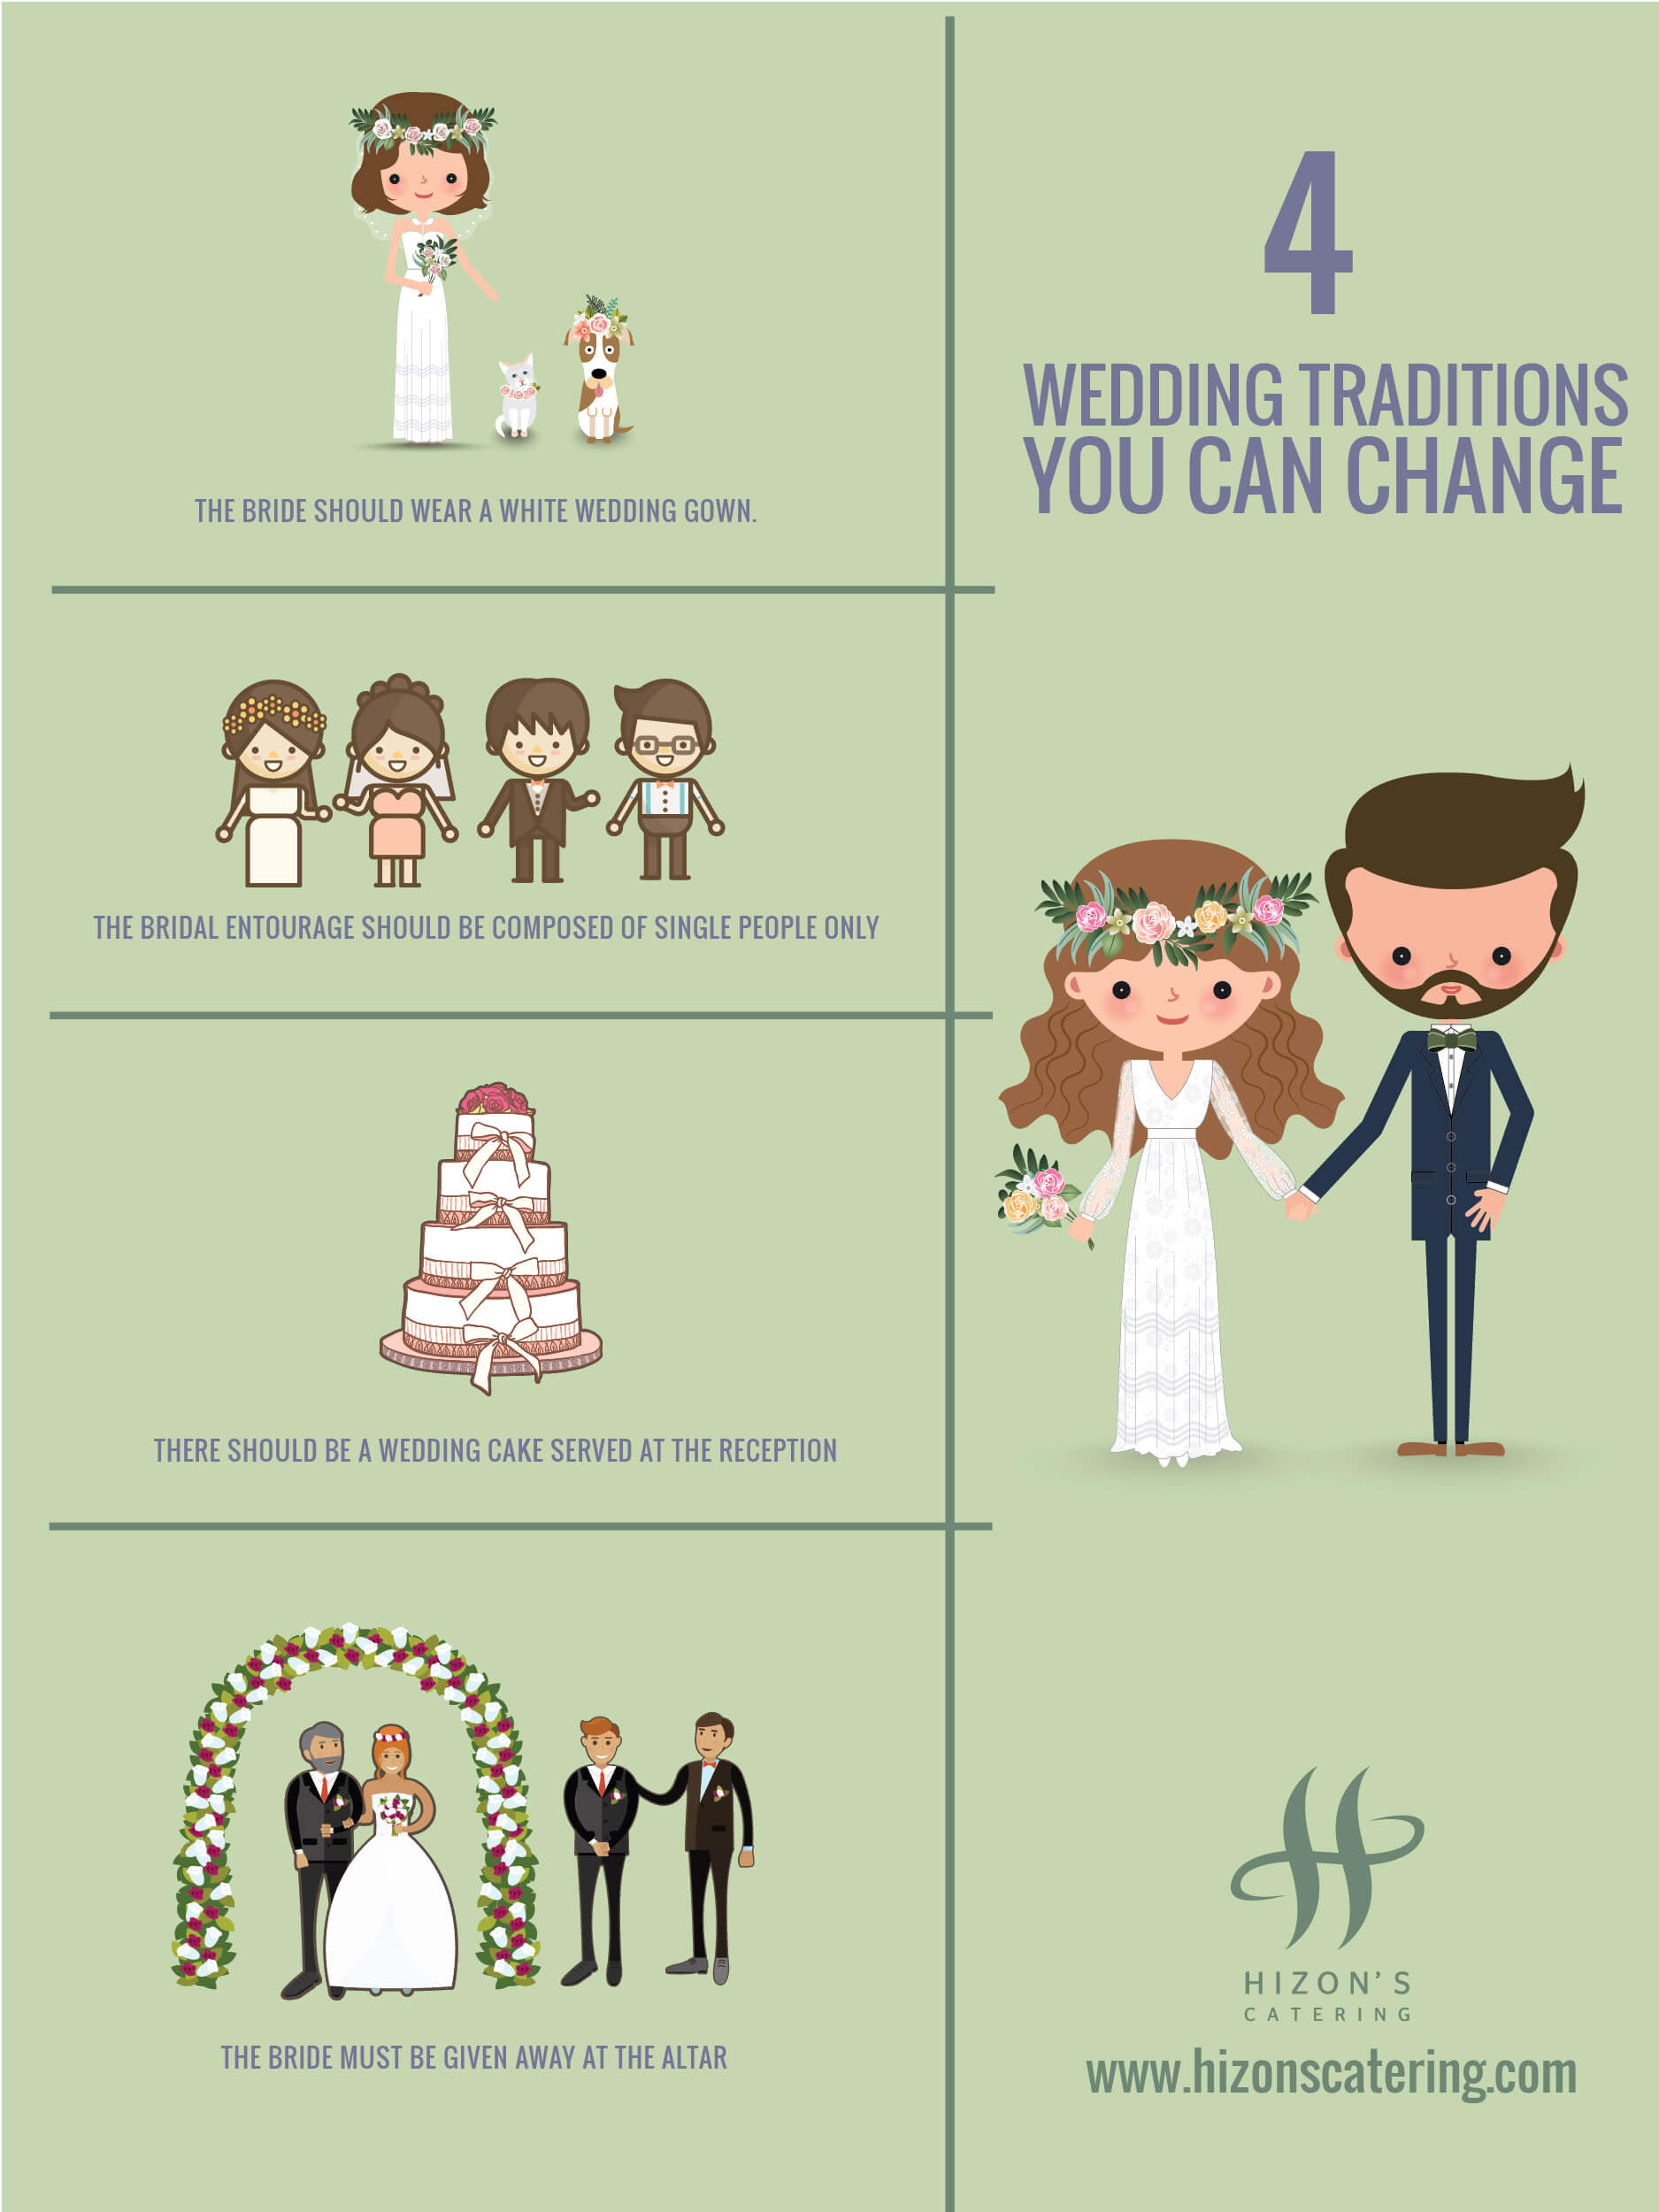 hizons catering wedding traditions you can change